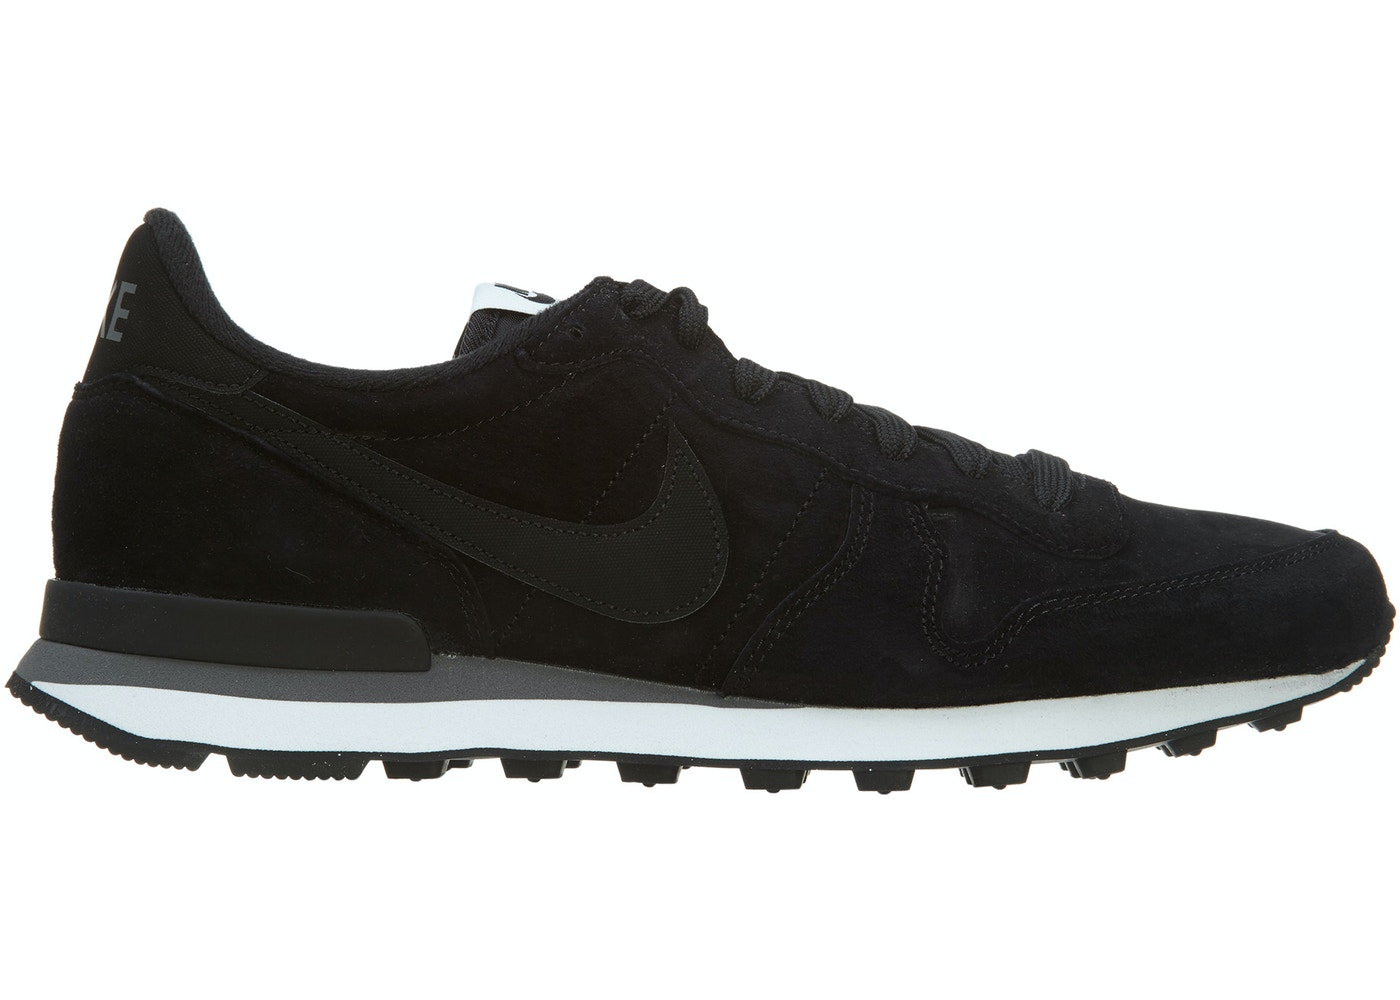 d77184cbbf53 Nike Internationalist Leather Black Black-Dark Grey-White - 631755-010